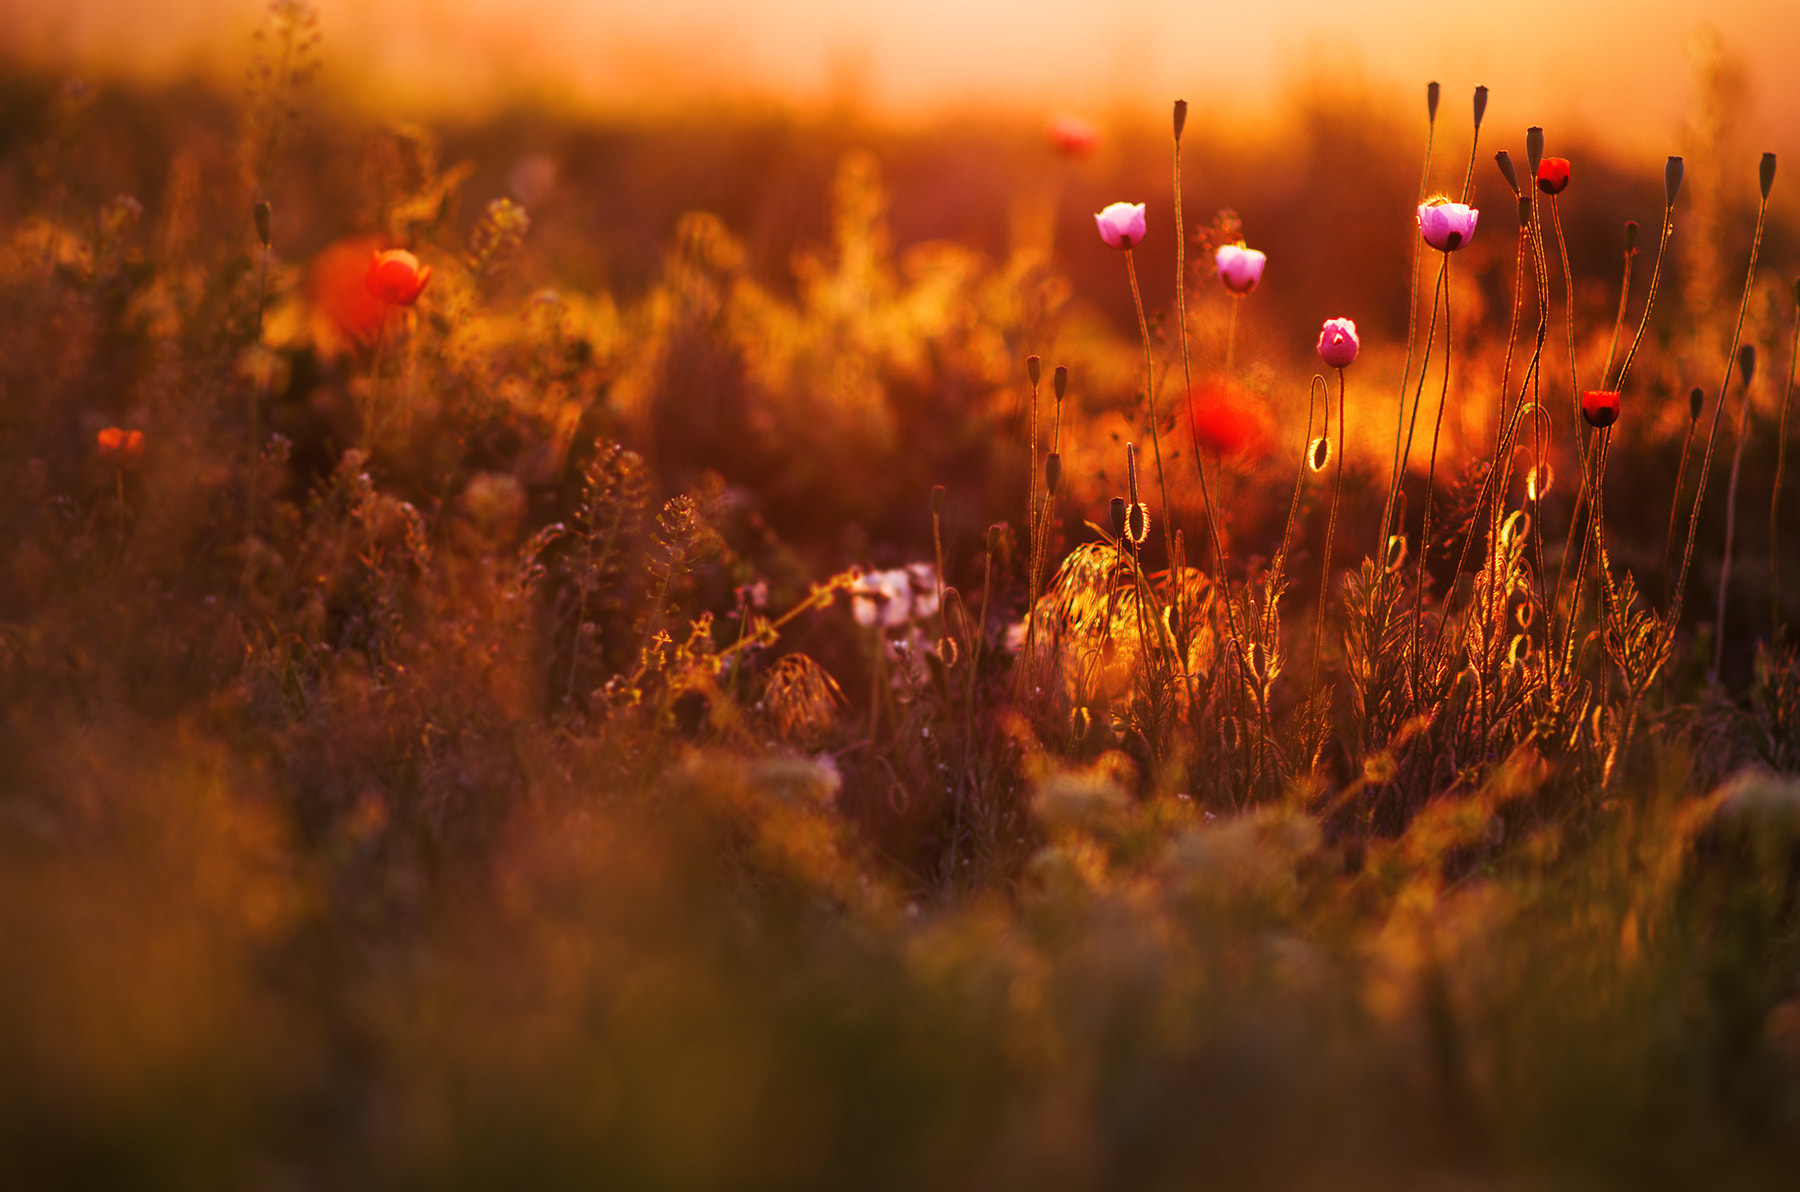 Photograph poppies in the morning by Cristi Jora on 500px